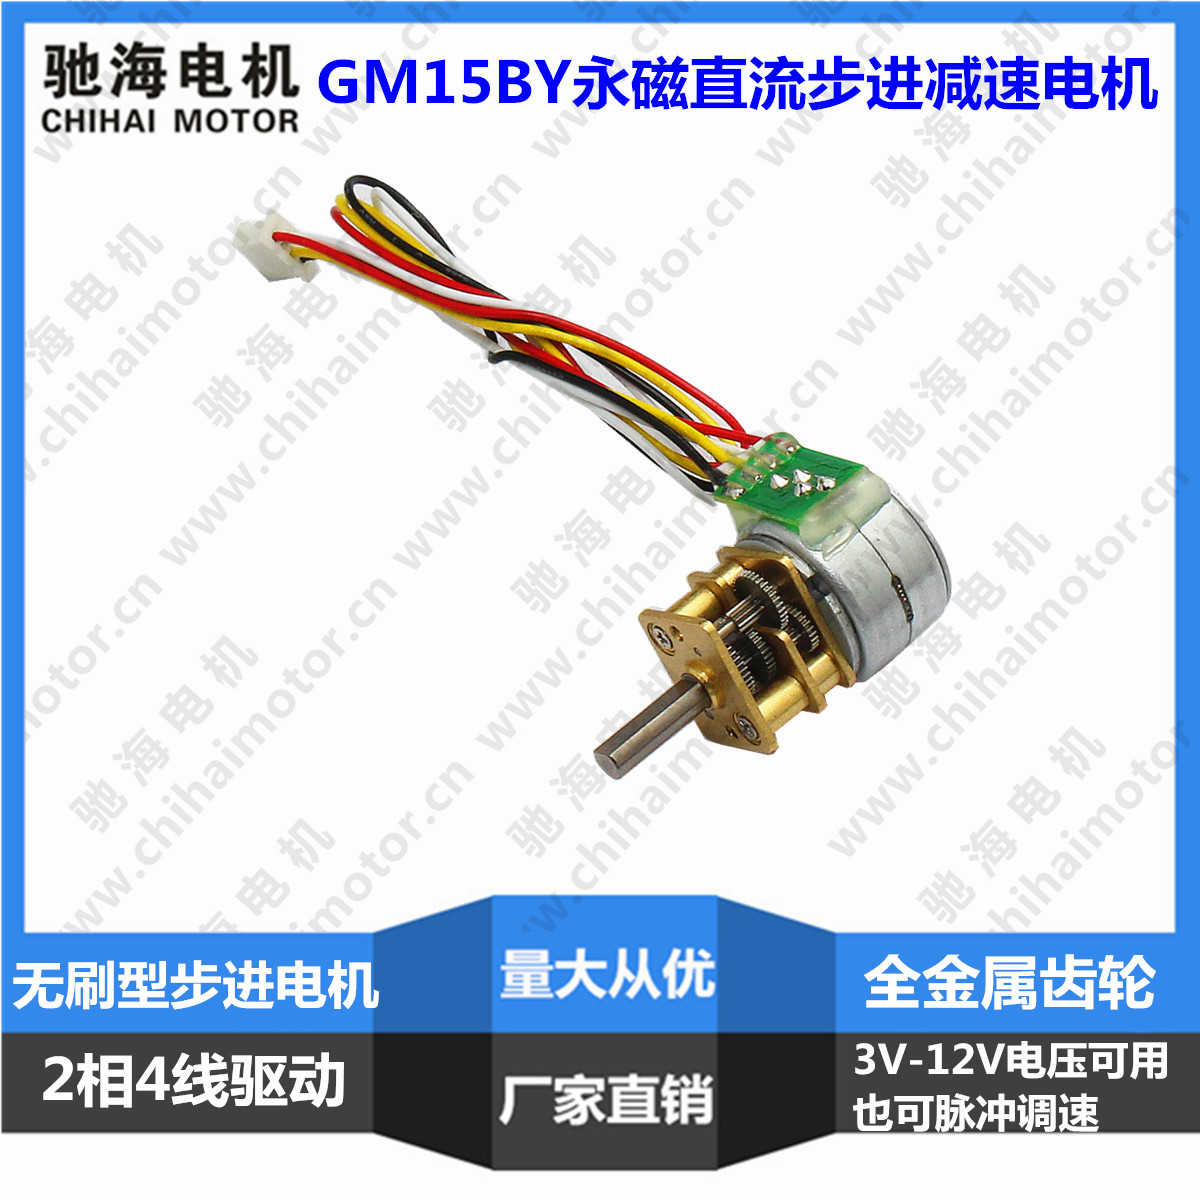 GM15BY Stepper Motor - Small Size, Small Step Angle, Big Torque, Two-phase Four Lines 428yghm818 stepper motor two phase four wire